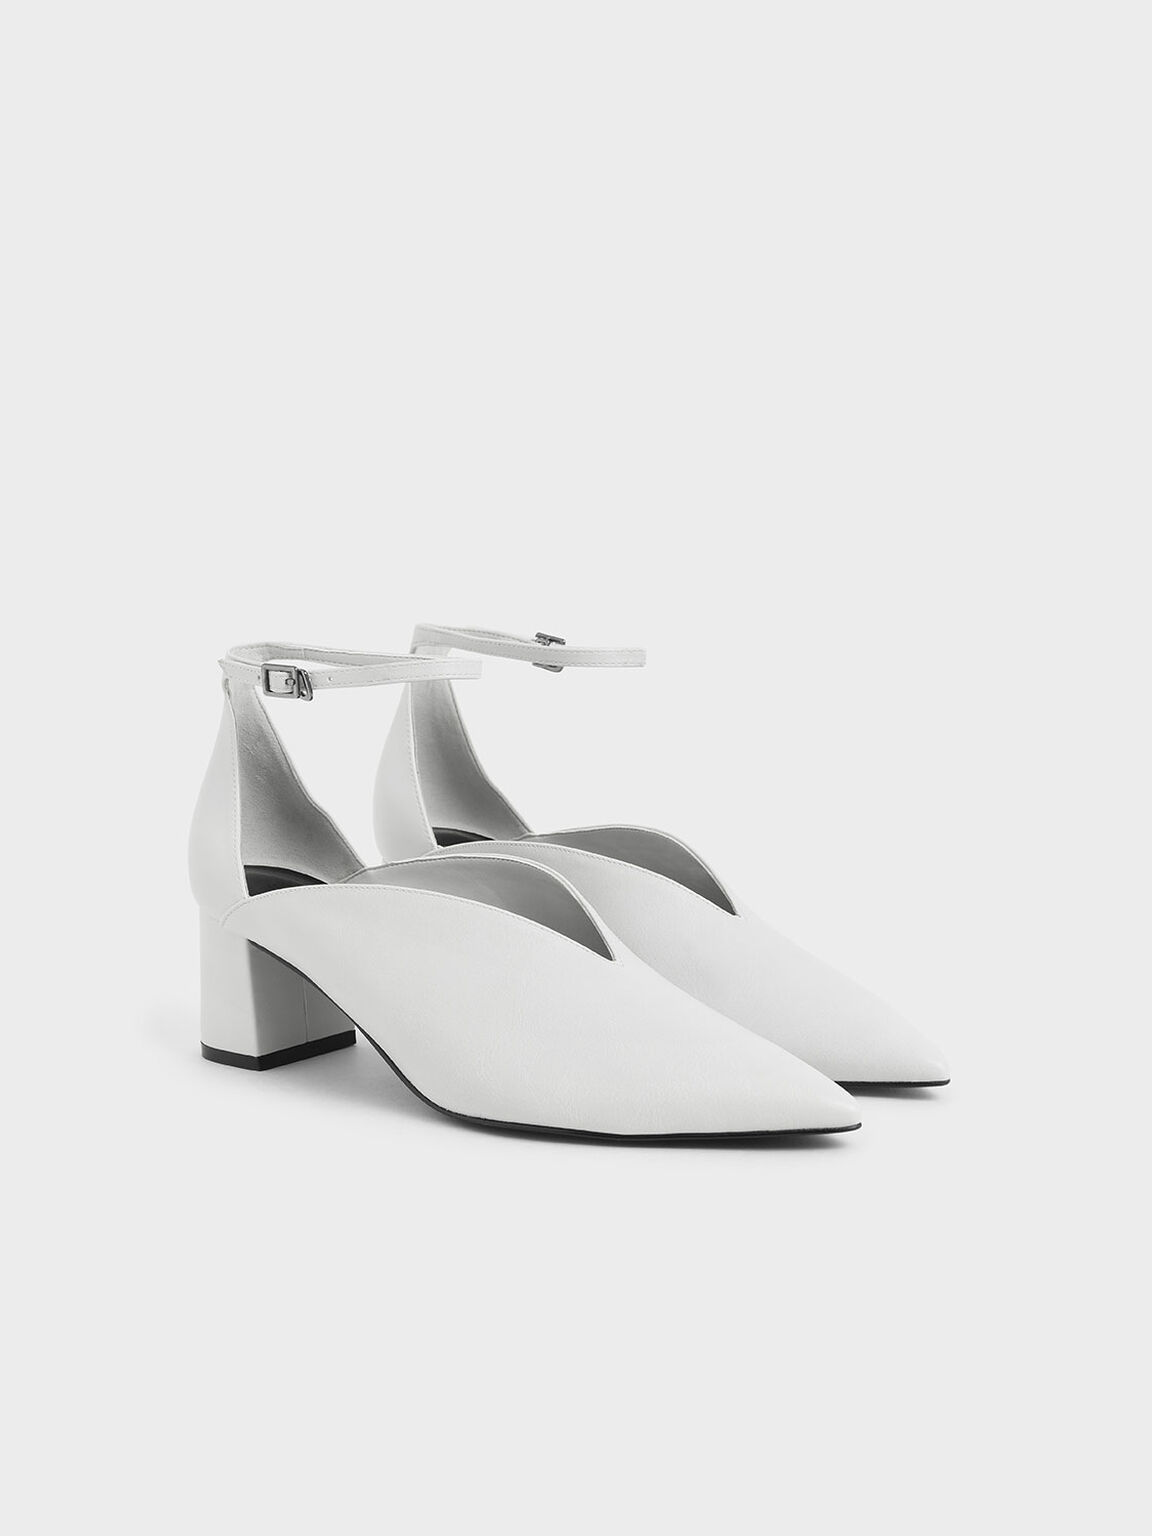 V-Cut Ankle Strap Pumps, White, hi-res